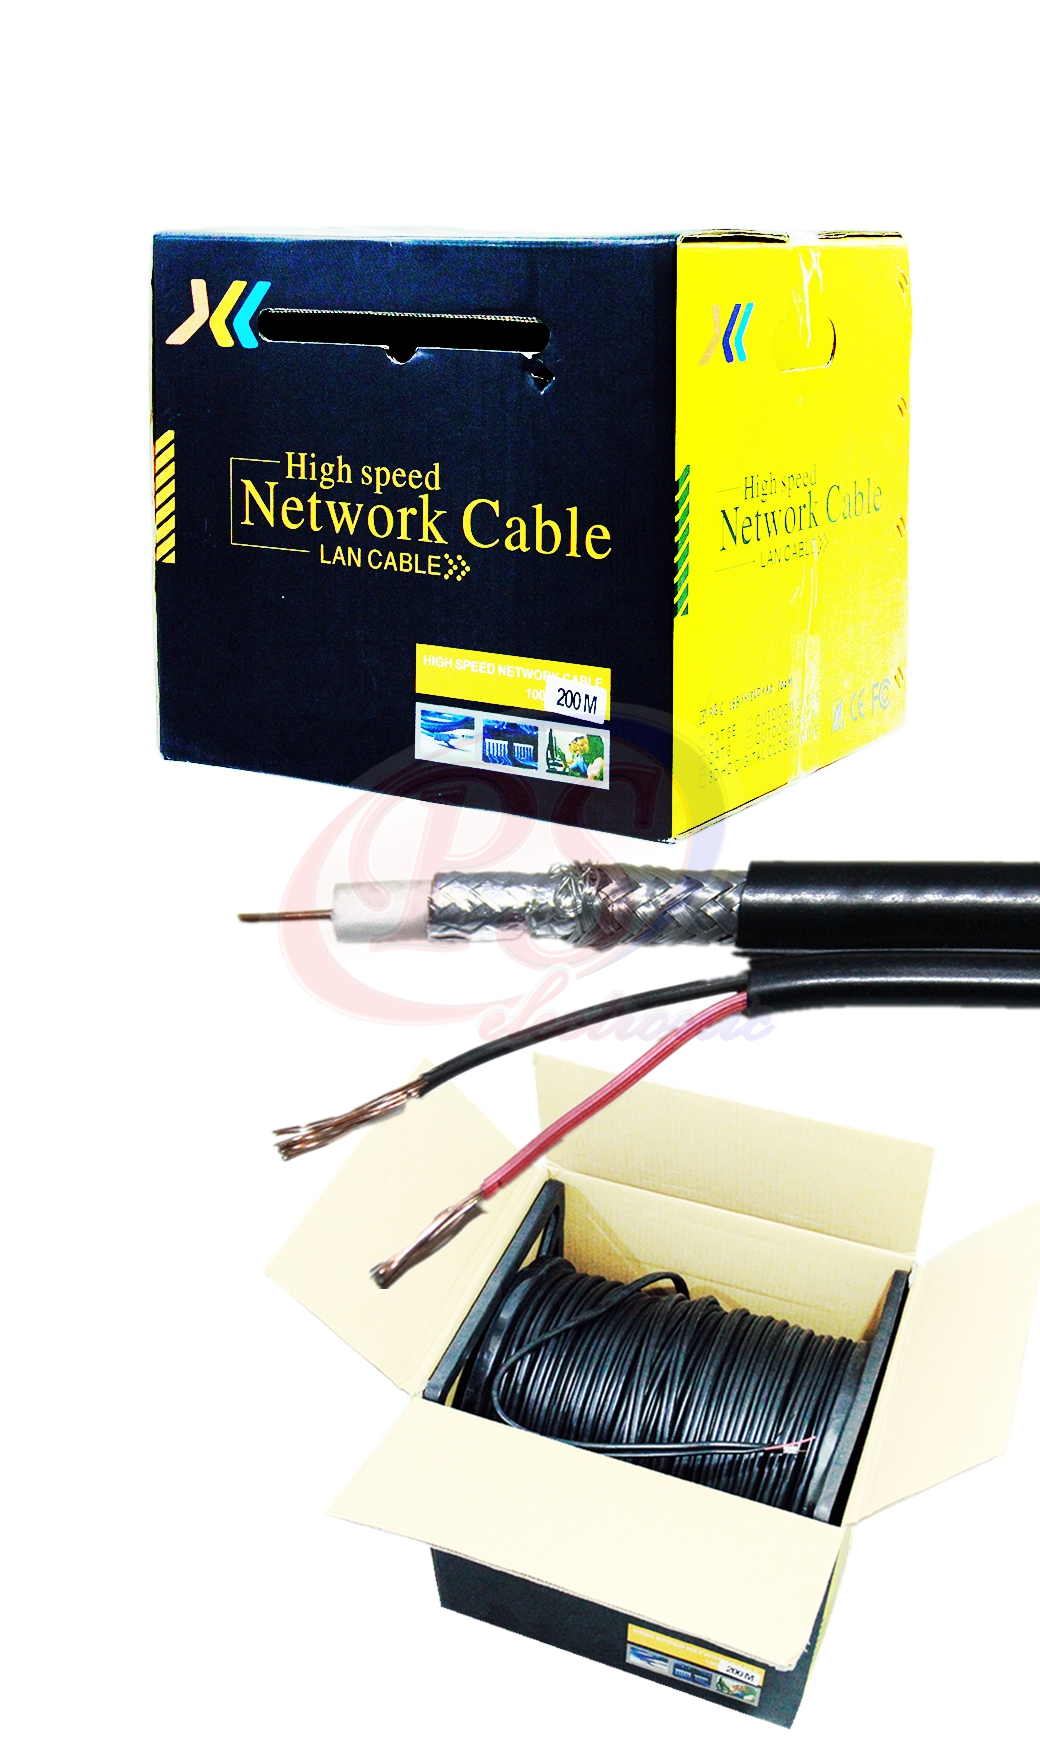 CABLE RG6 168 POWER LINE 200M